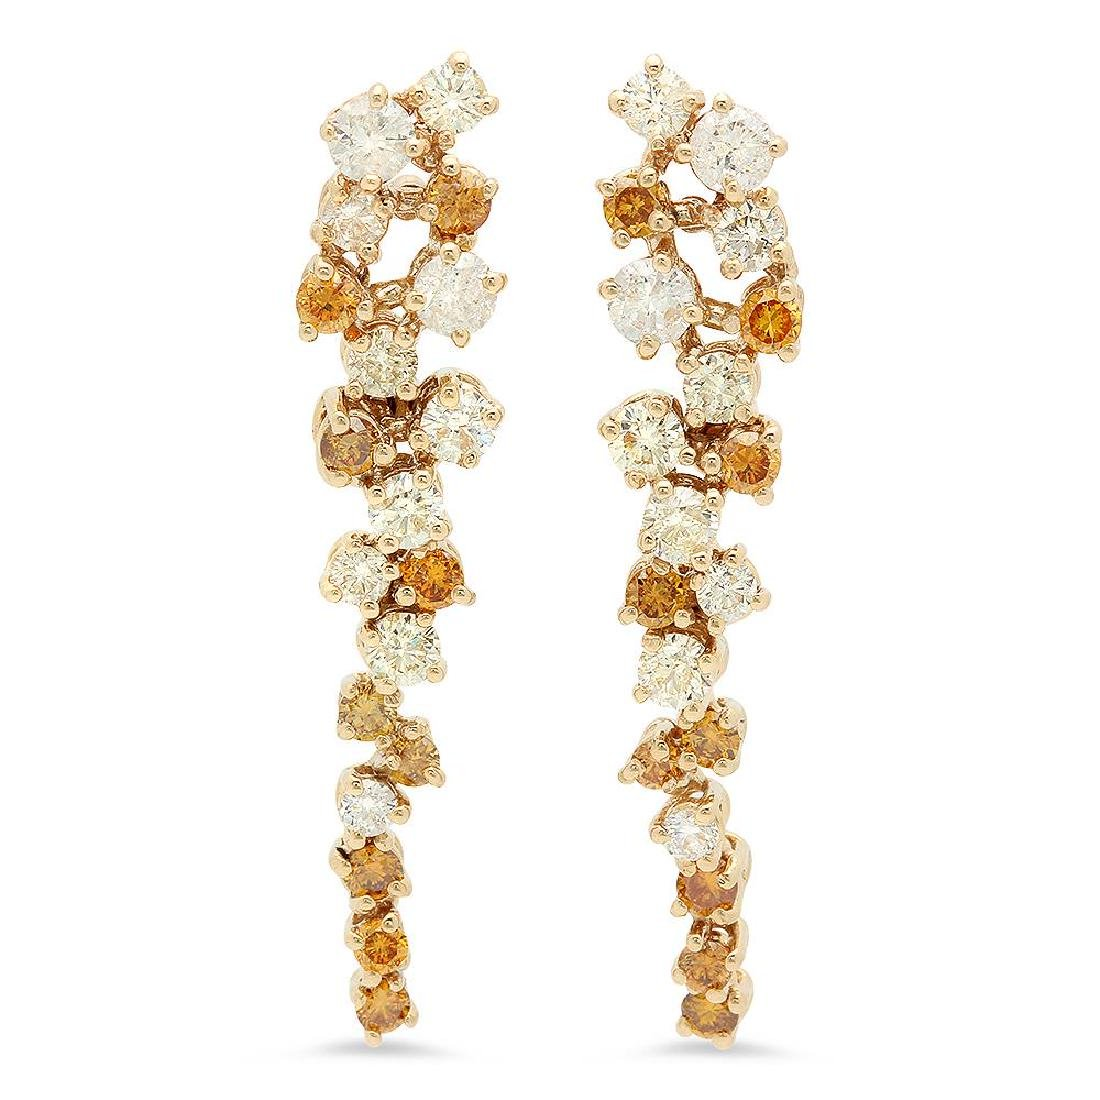 14K Gold 2.20cts Diamond Earrings